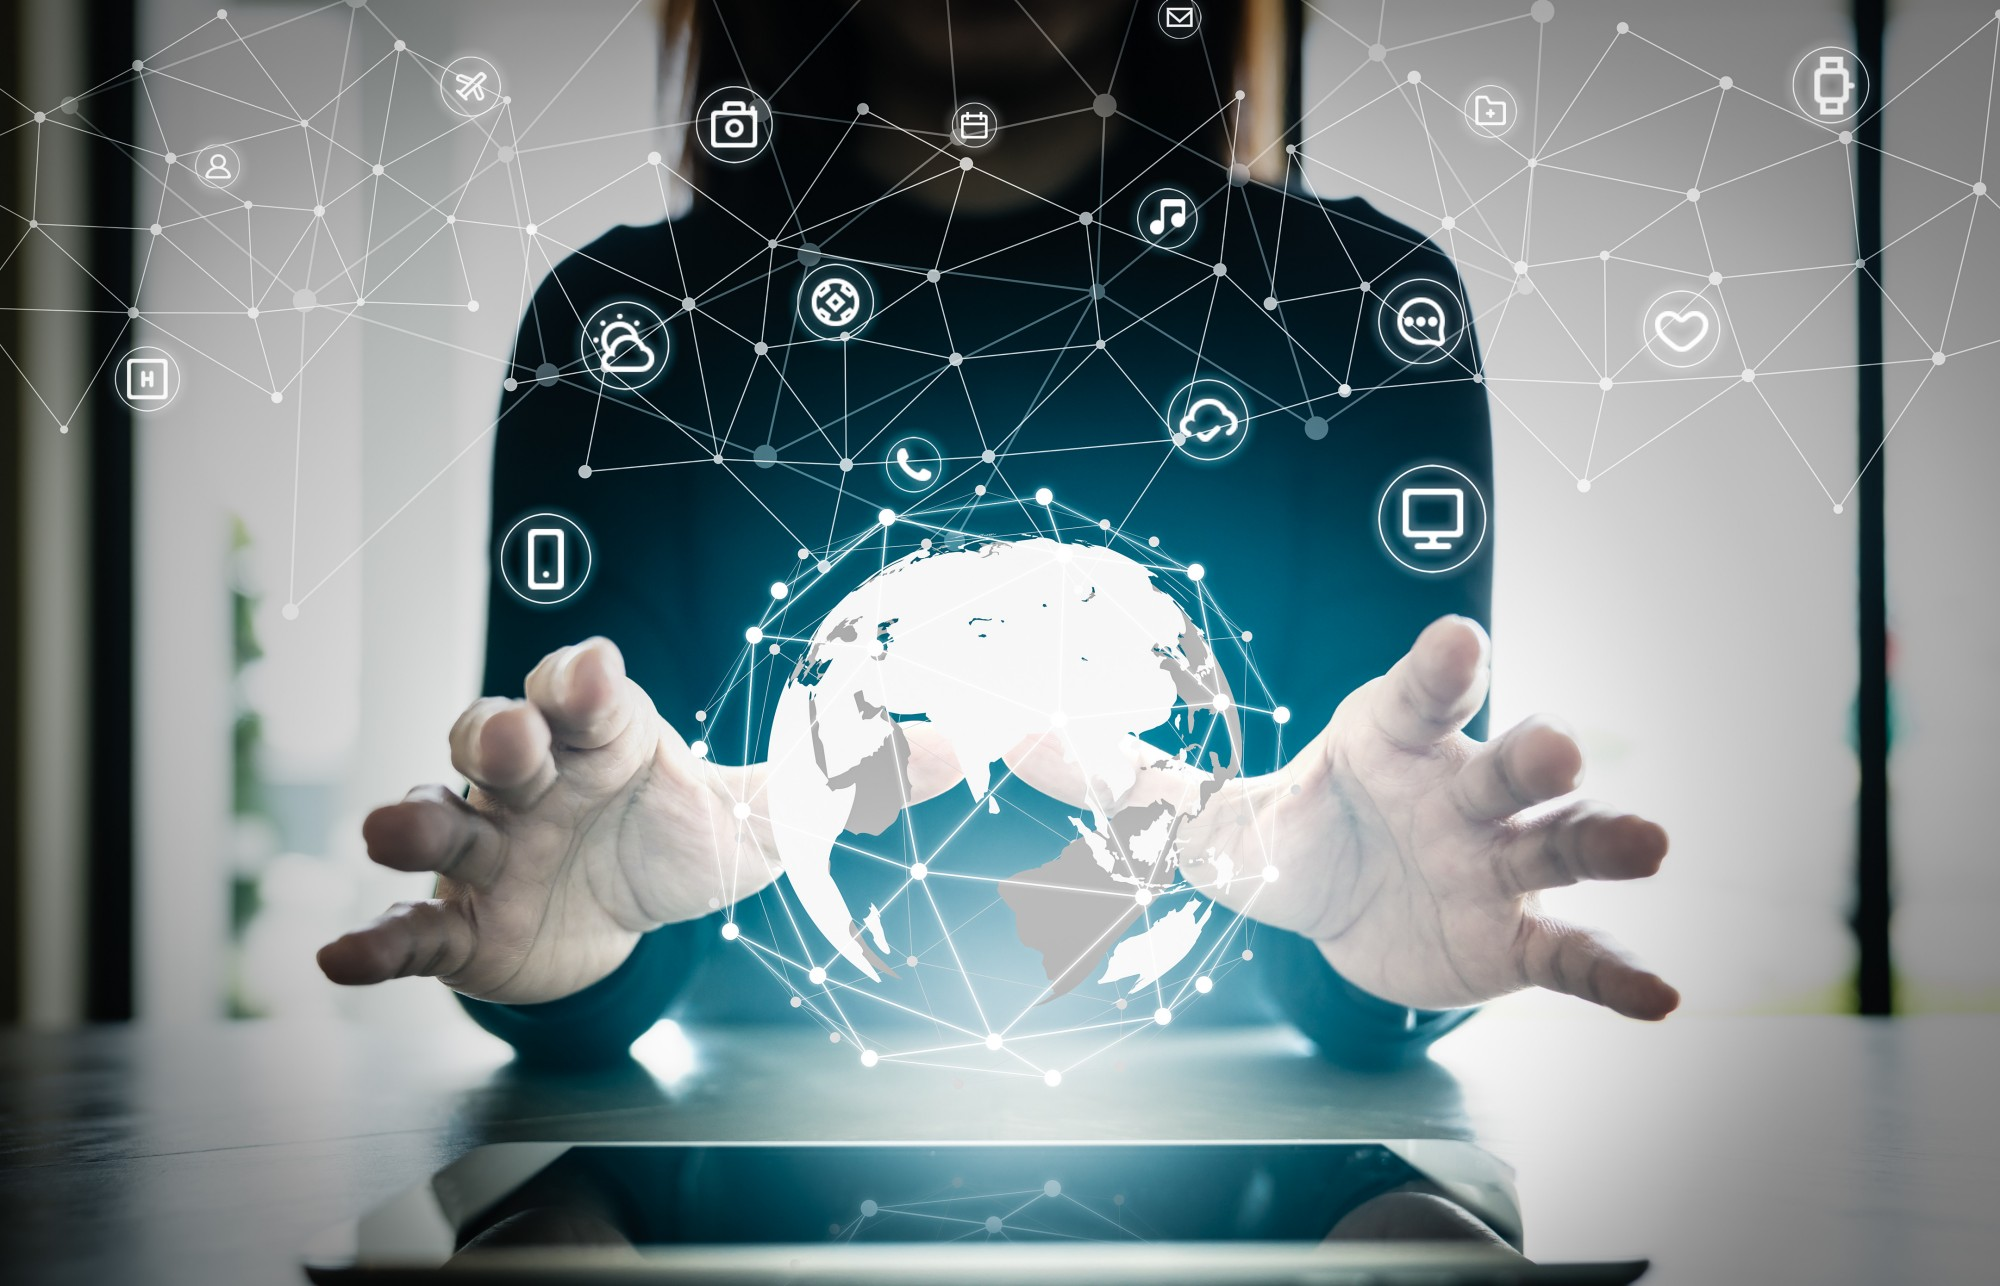 A new era for the Internet of Things   Folder Open Innovation   Siemens  Global